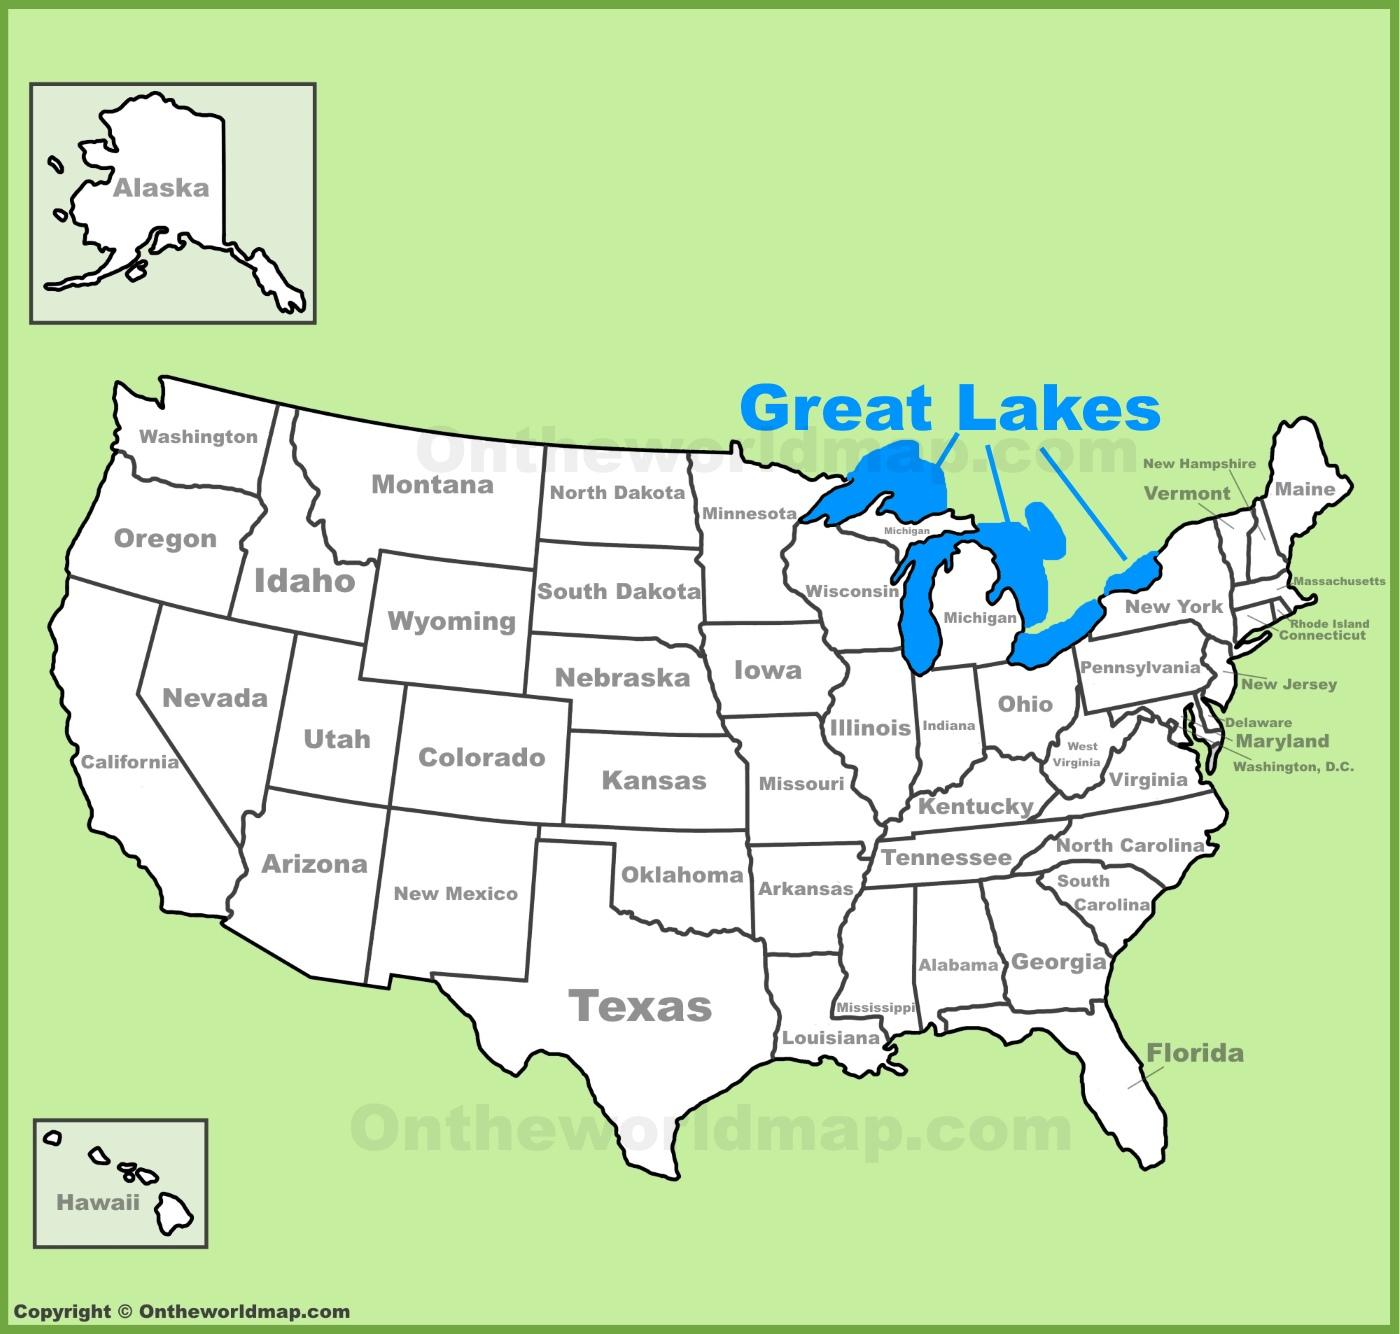 Great Lakes location on the US Map